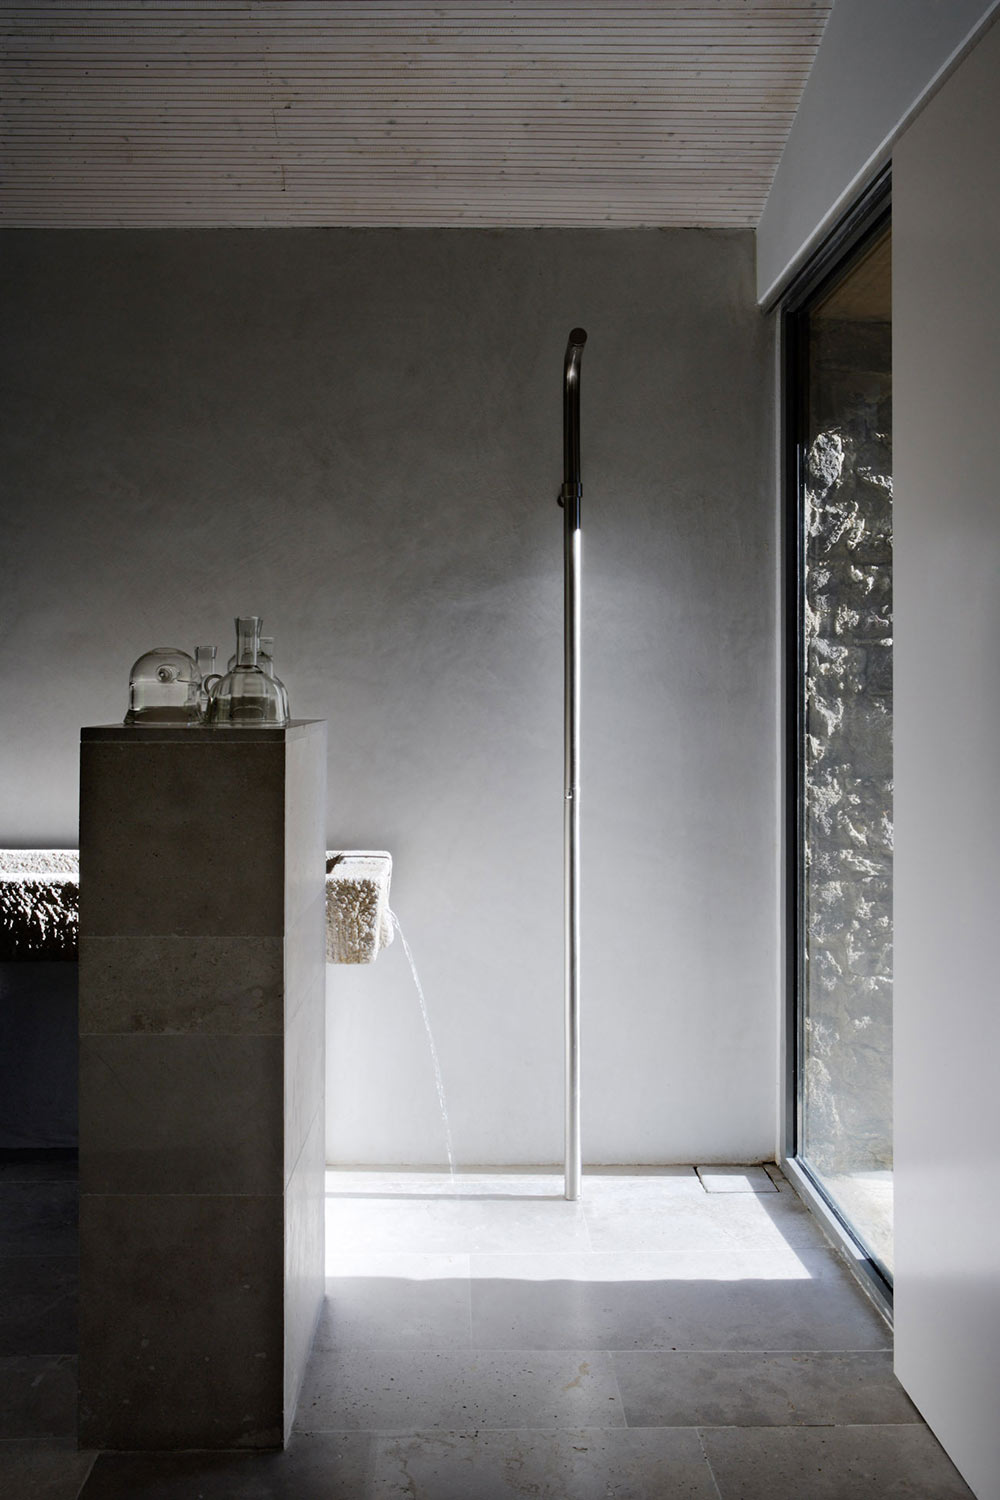 Bathroom, Shower, Finca en Extremadura in Cáceres, Spain by ÁBATON